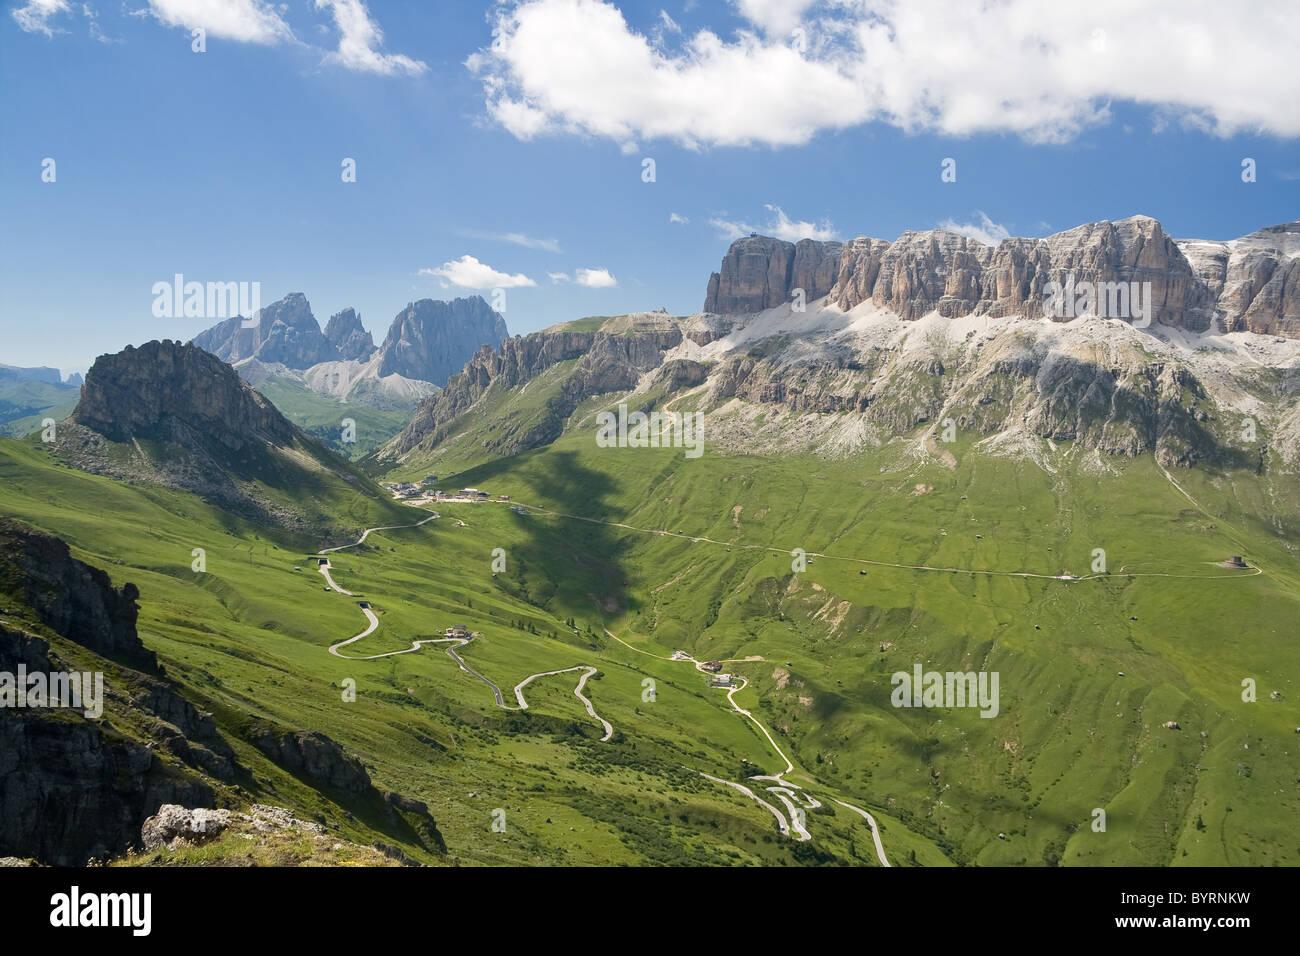 summer view of Pordoi pass dominated by Sella mount, Trentino, Italy - Stock Image